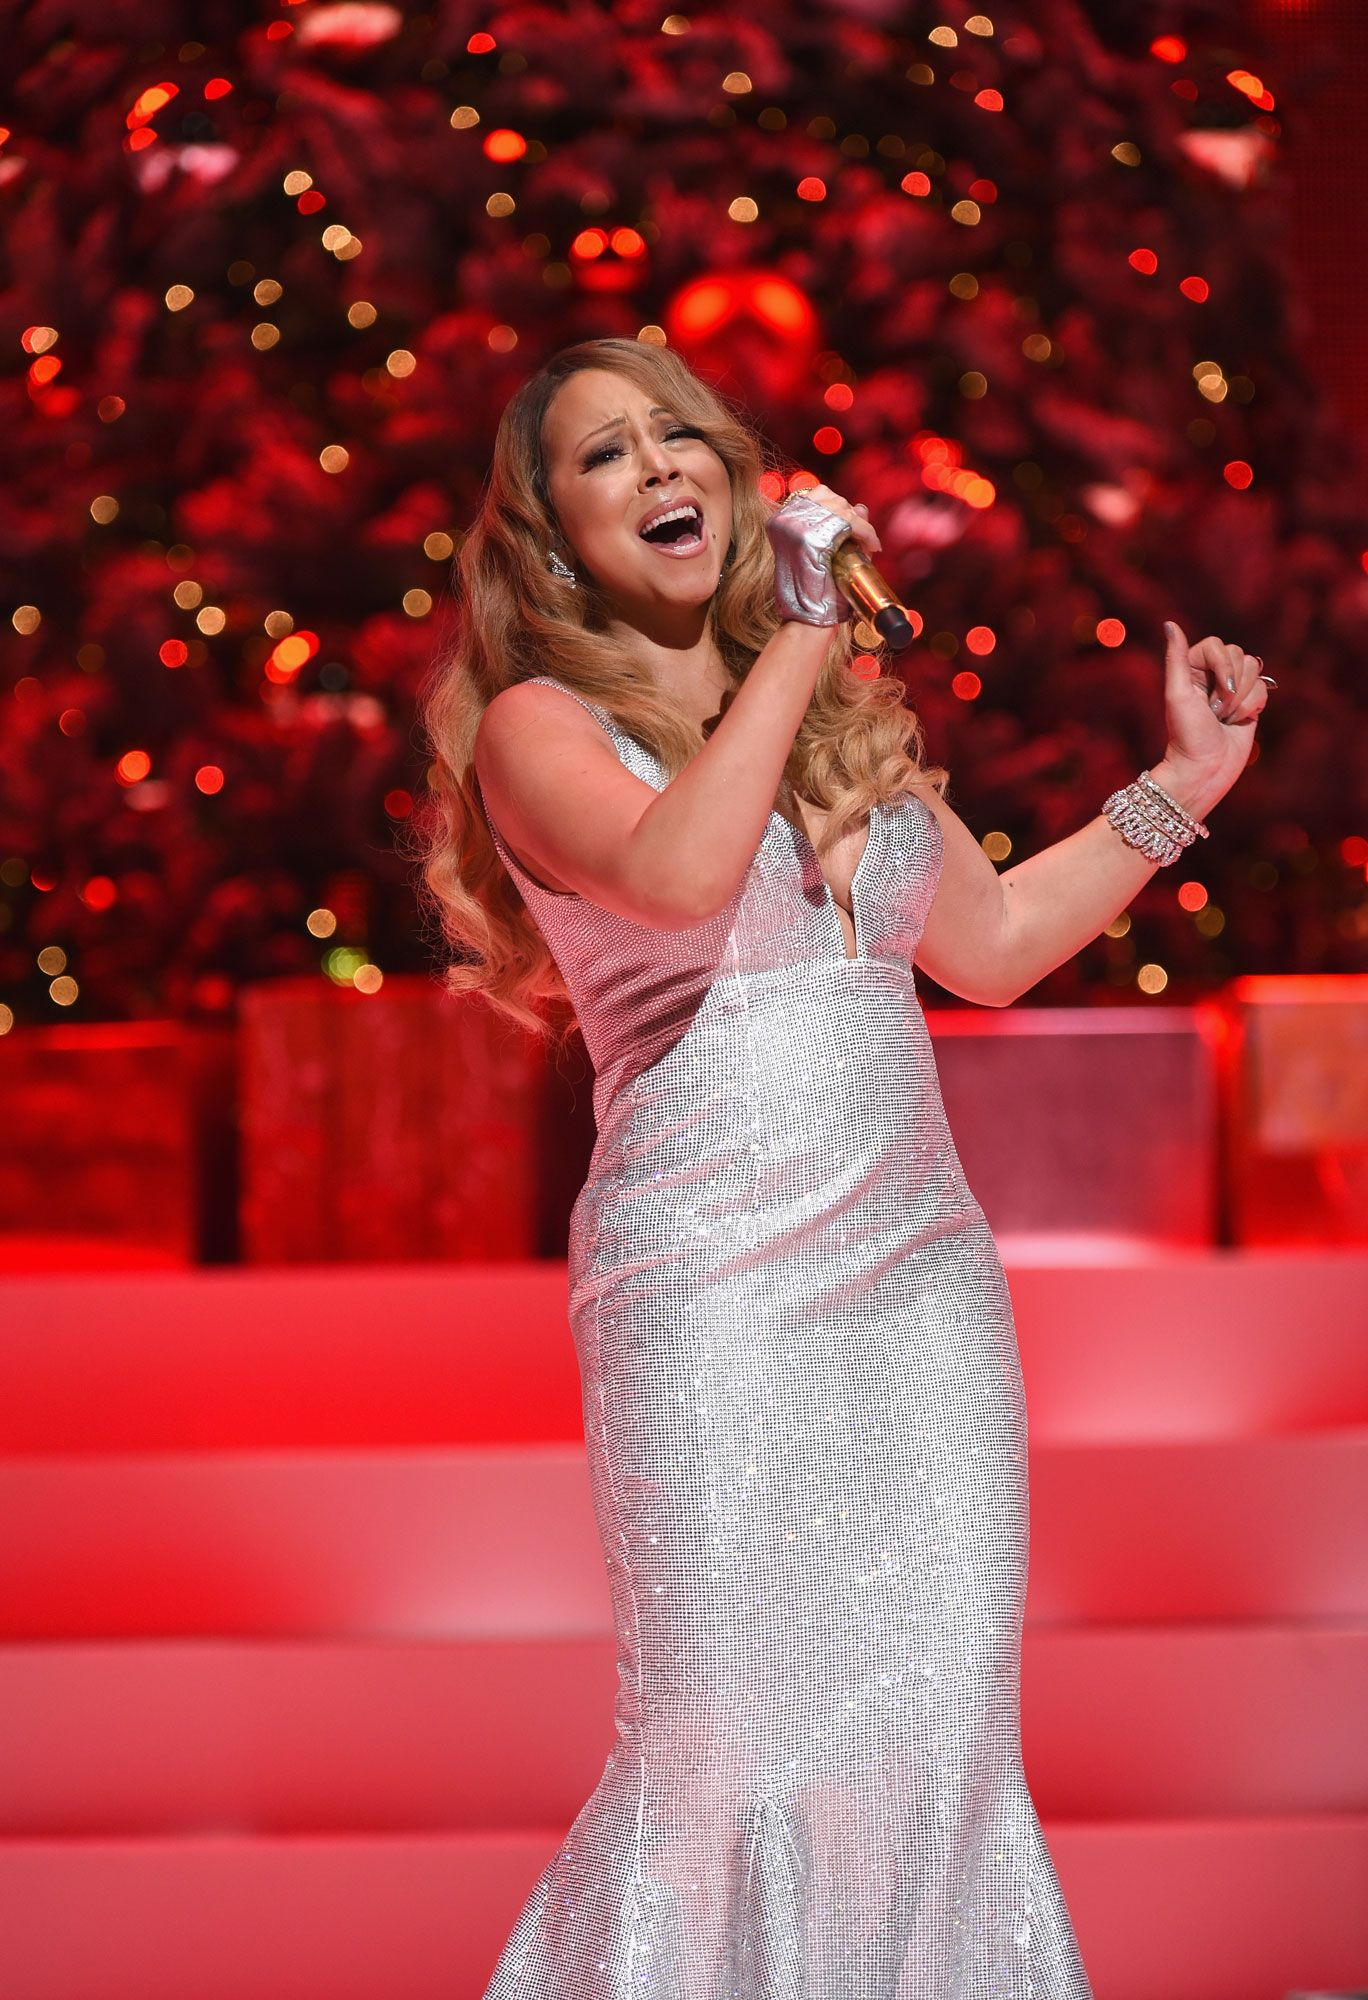 The Enduring Magic Of Mariah Carey S All I Want For Christmas Is You Mariah Carey Photos Mariah Carey Mariah Carey Christmas